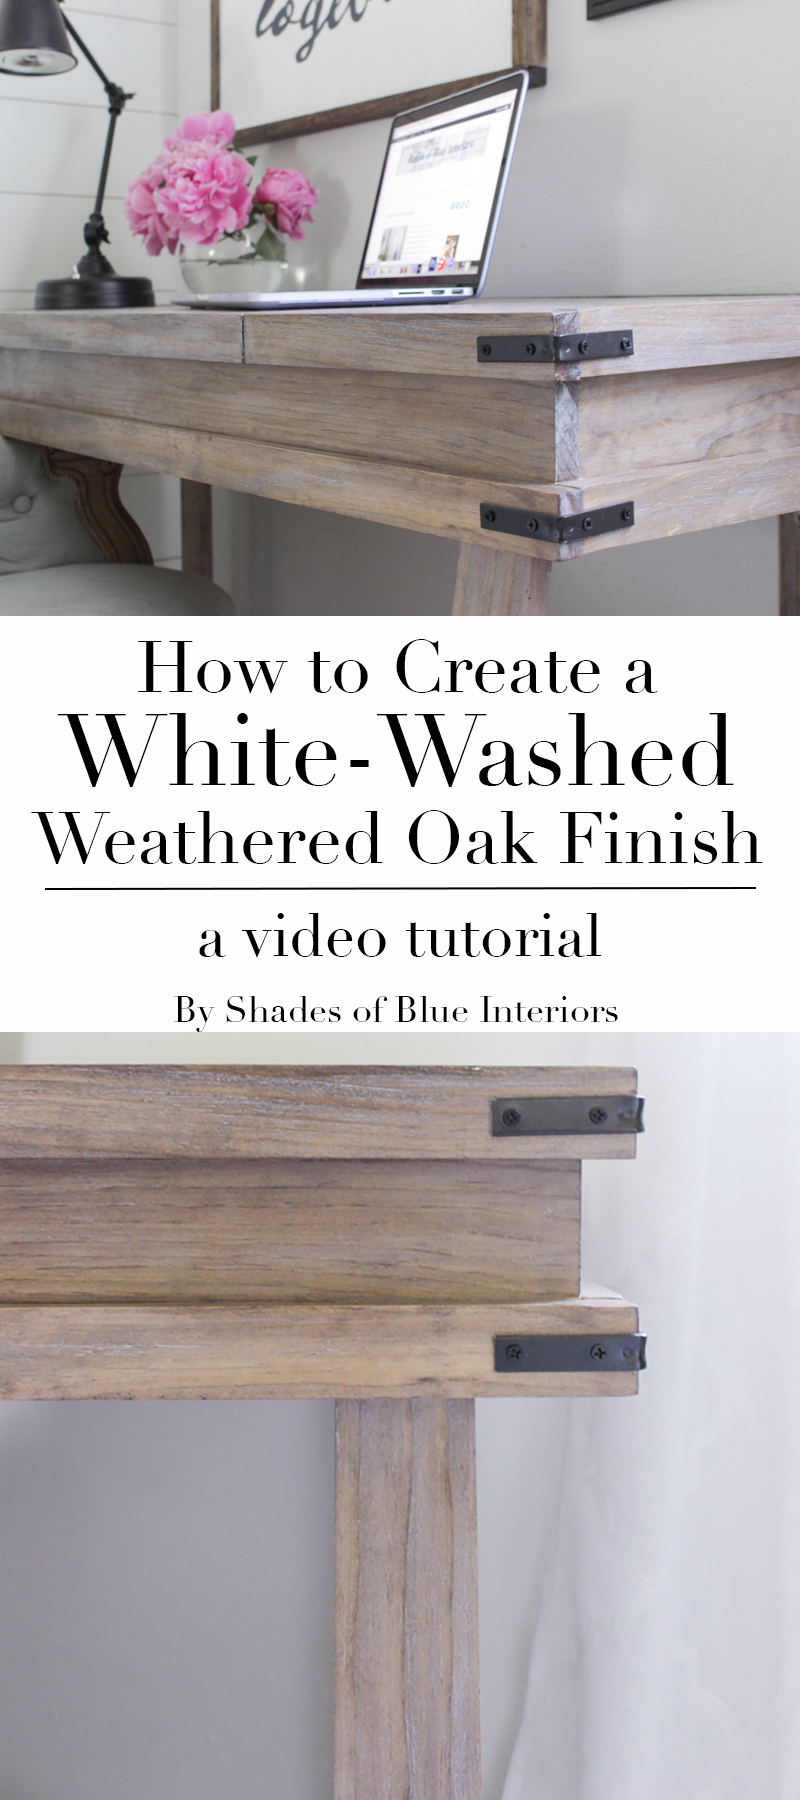 Creating A White Washed Weathered Oak Finish Video Tutorial Shades Of Blue Interiors